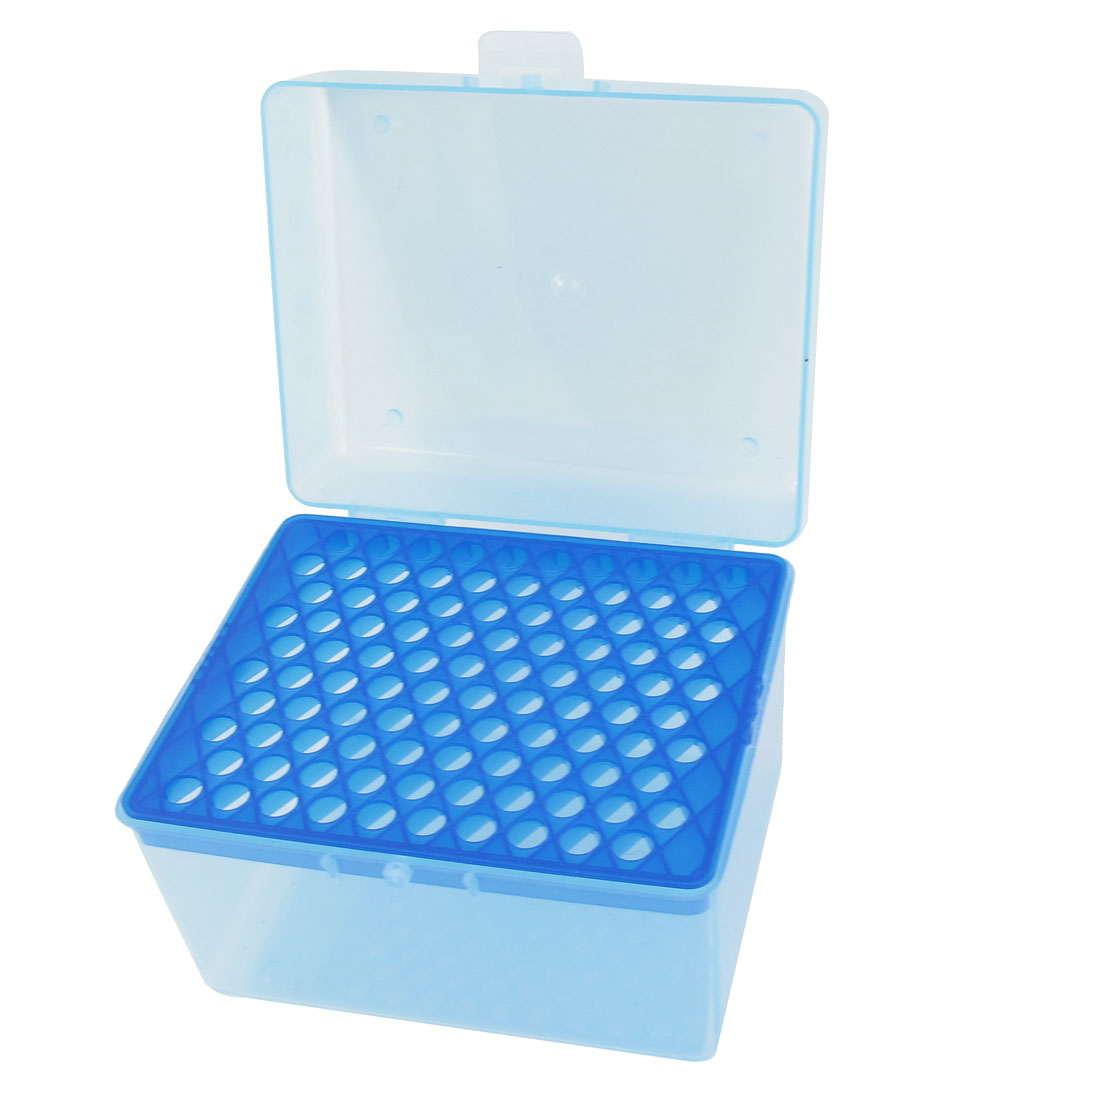 Laboratory 100 Positions 1mL Rectangular Pipette Pipettor Tip Holder Box